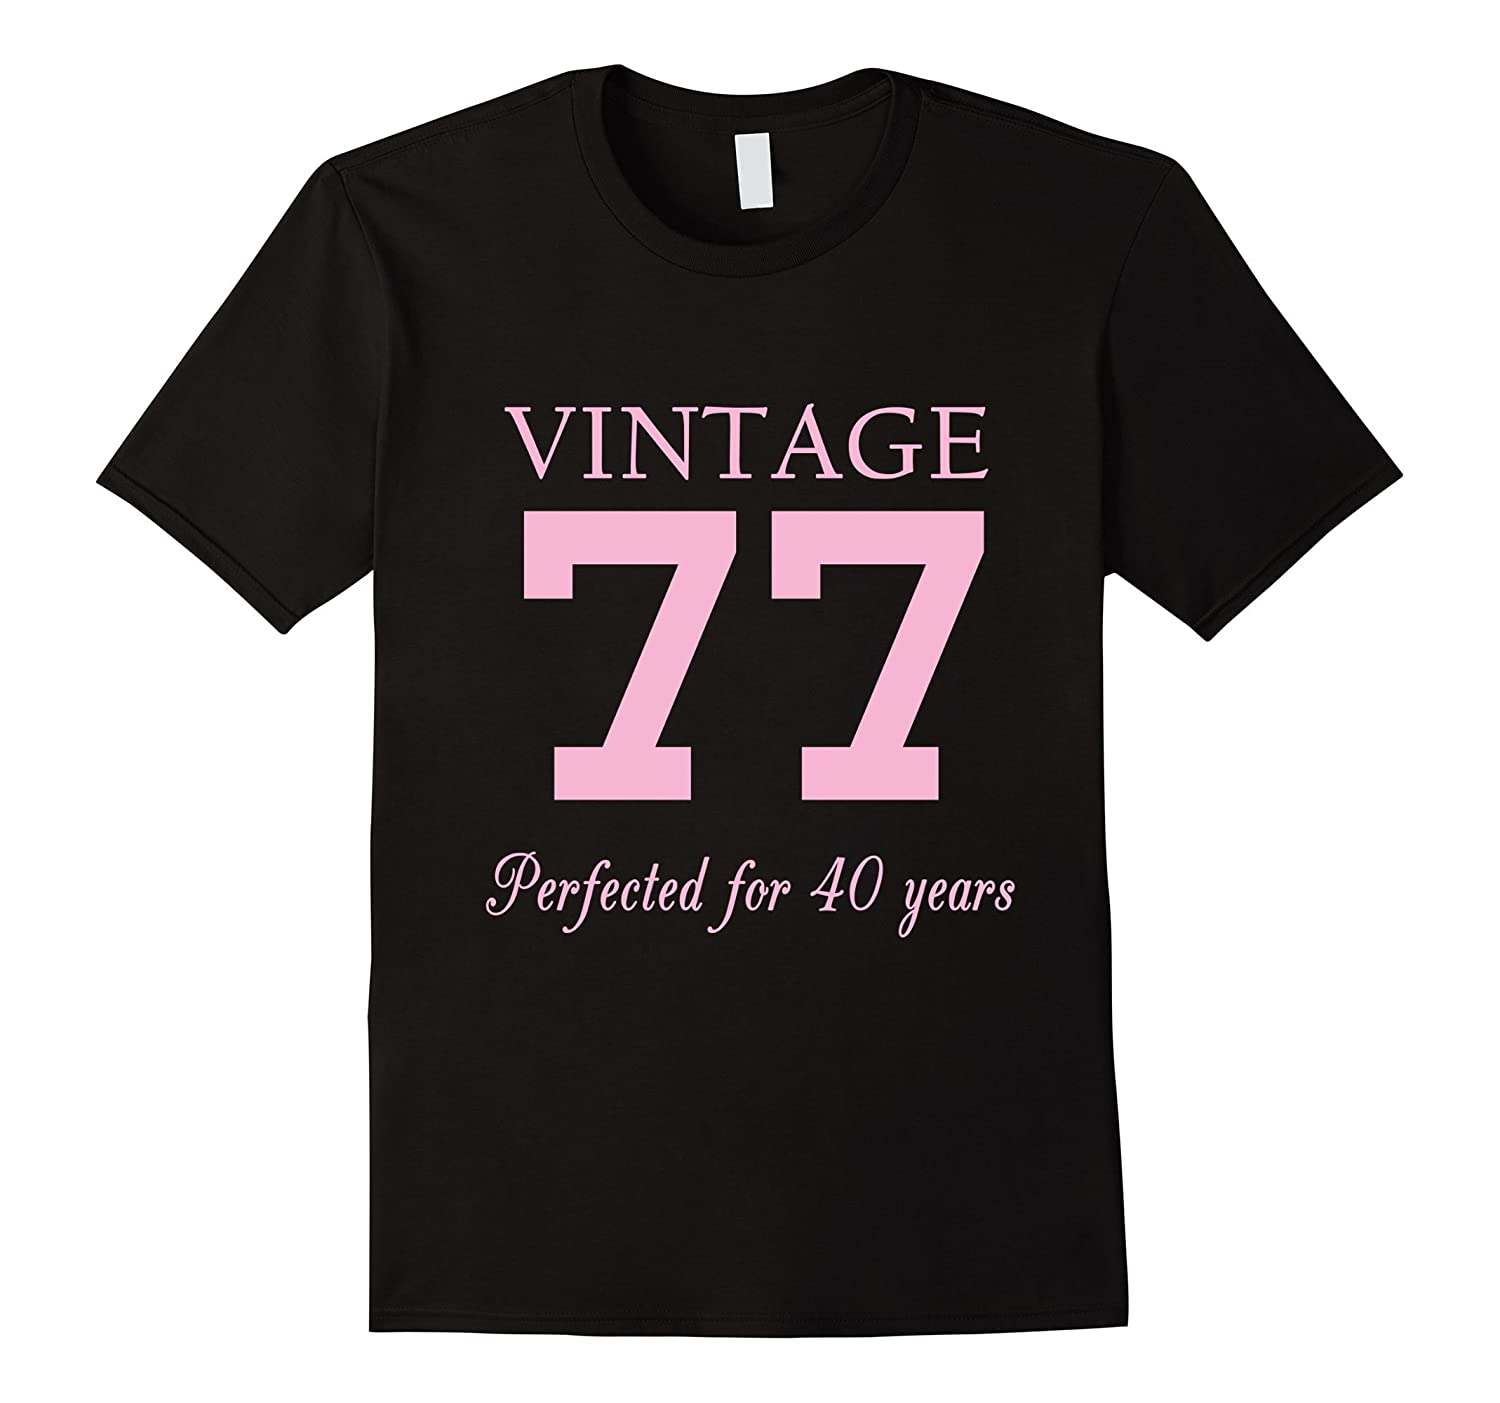 Vintage 77 40 Years Old Birthday Gift For Women PL Polozatee